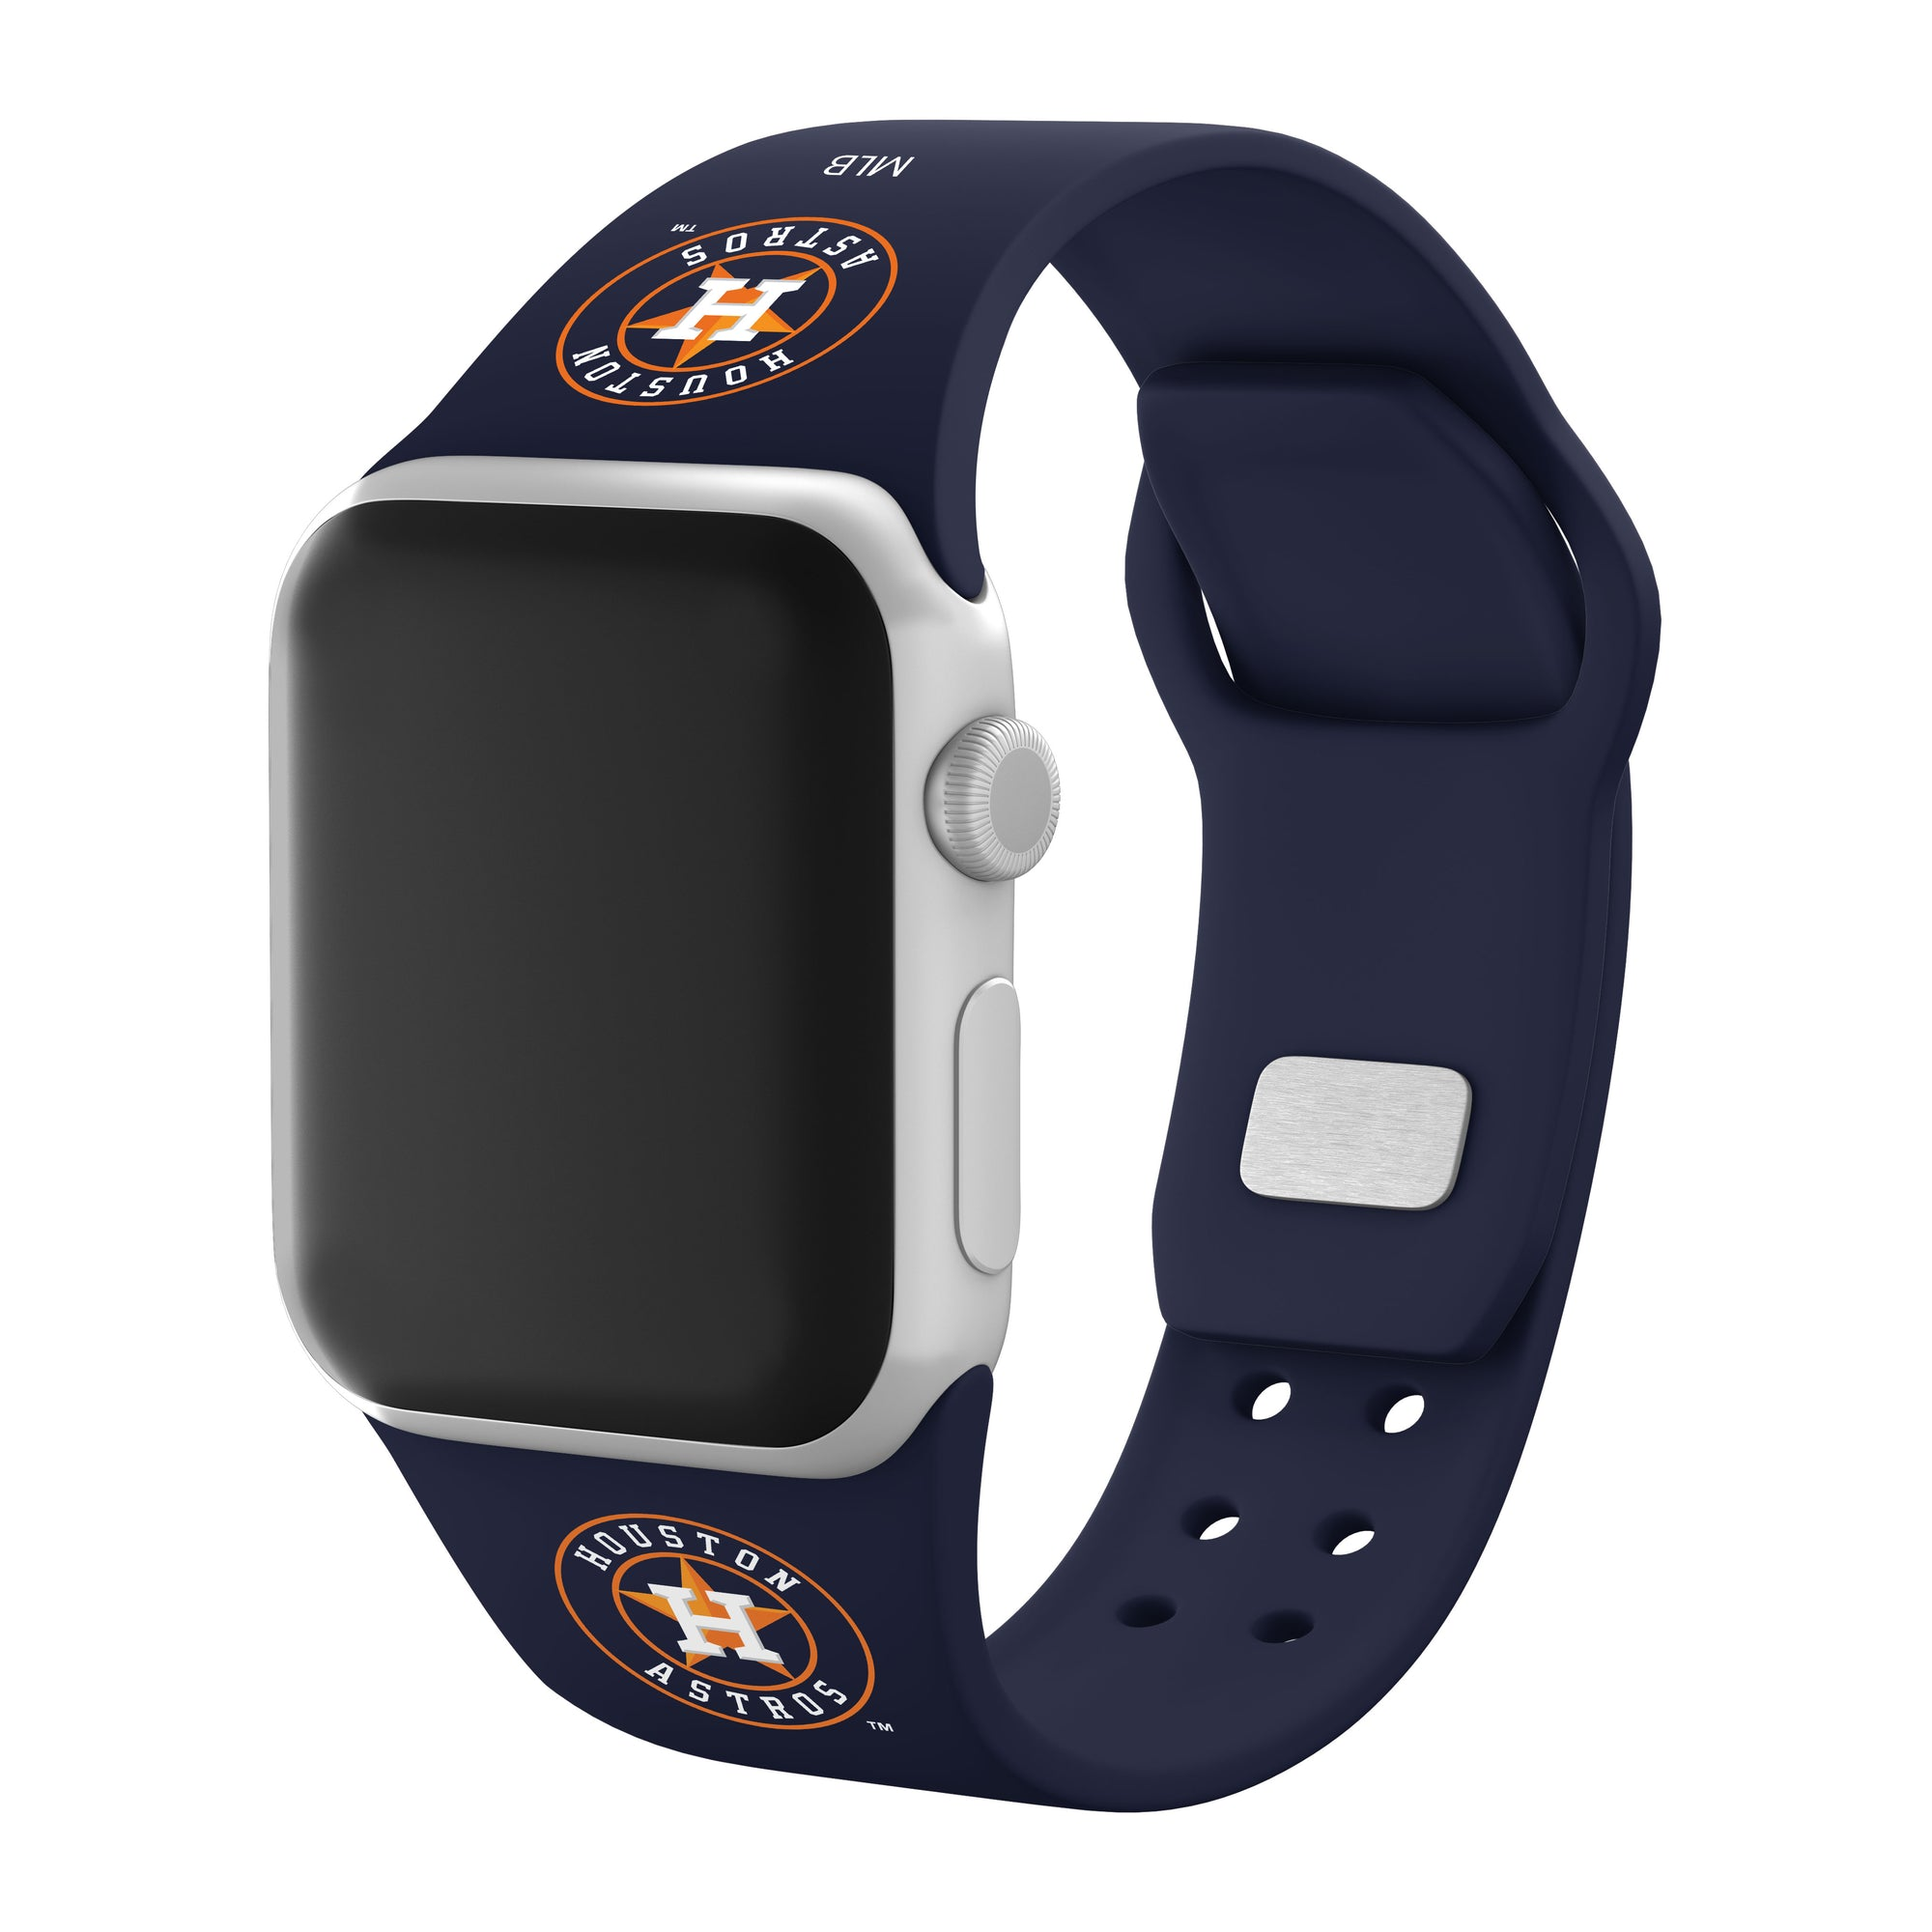 Houston Astros Silicone Apple Watch Band - AffinityBands